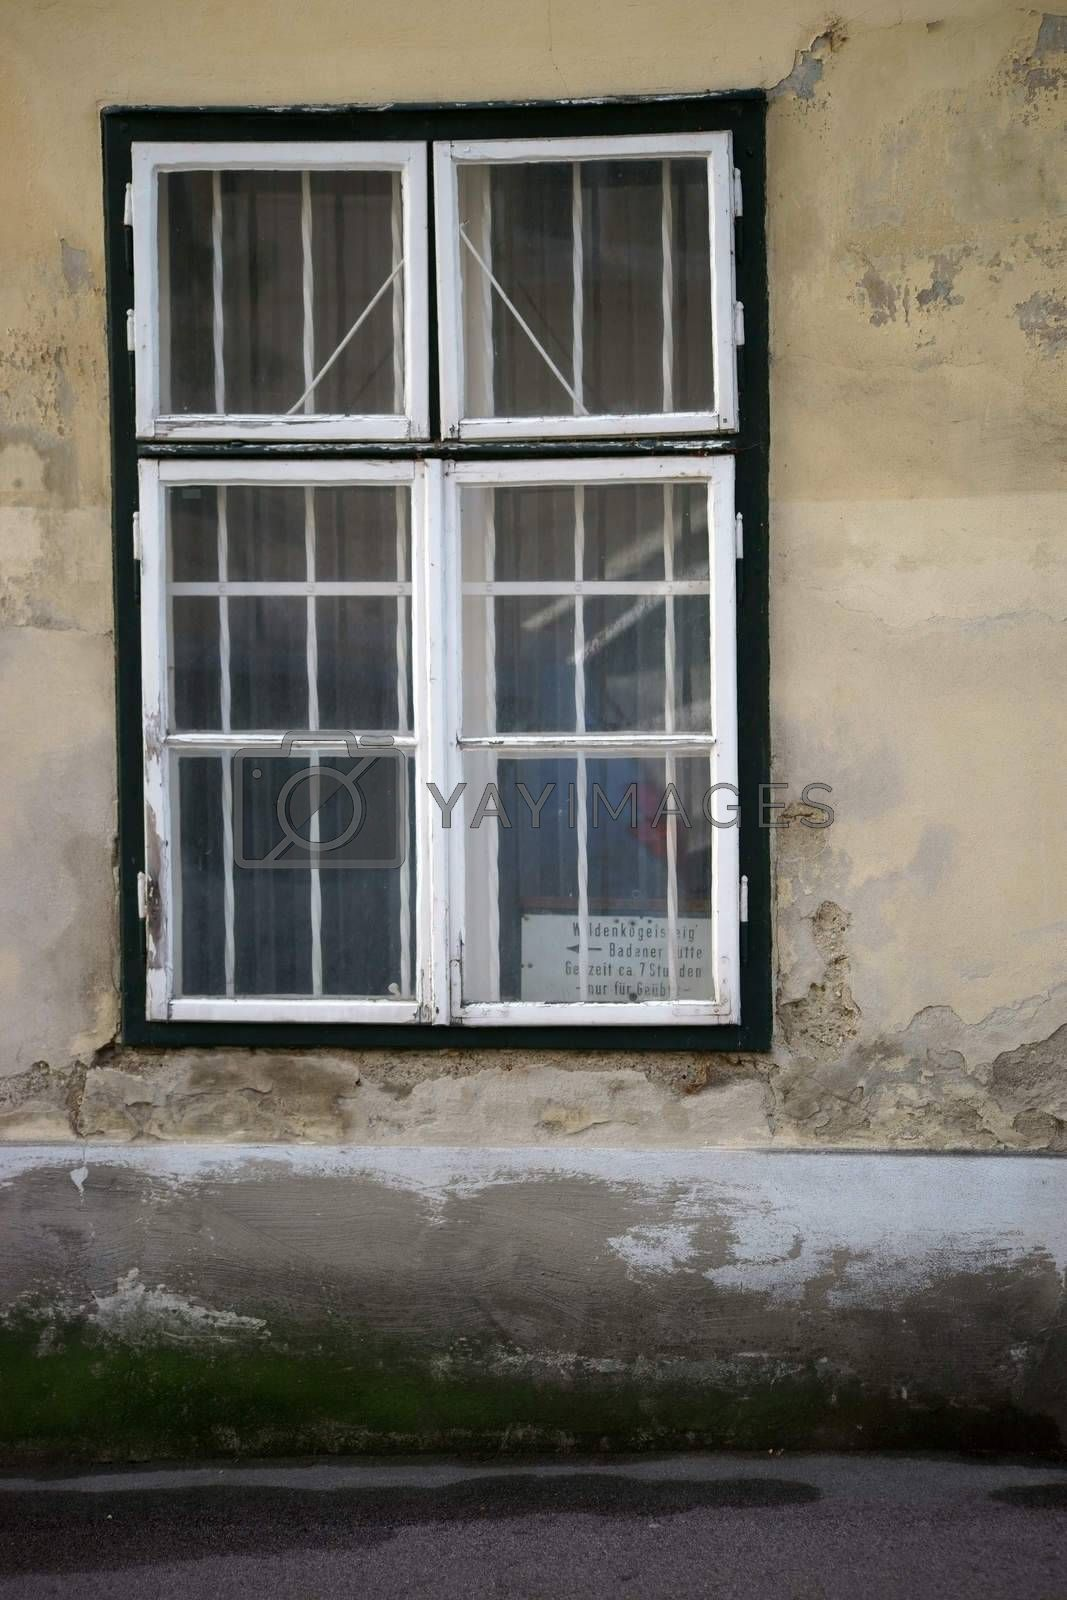 An old nostalgic wooden window in a prominent concrete wall with traces of water.